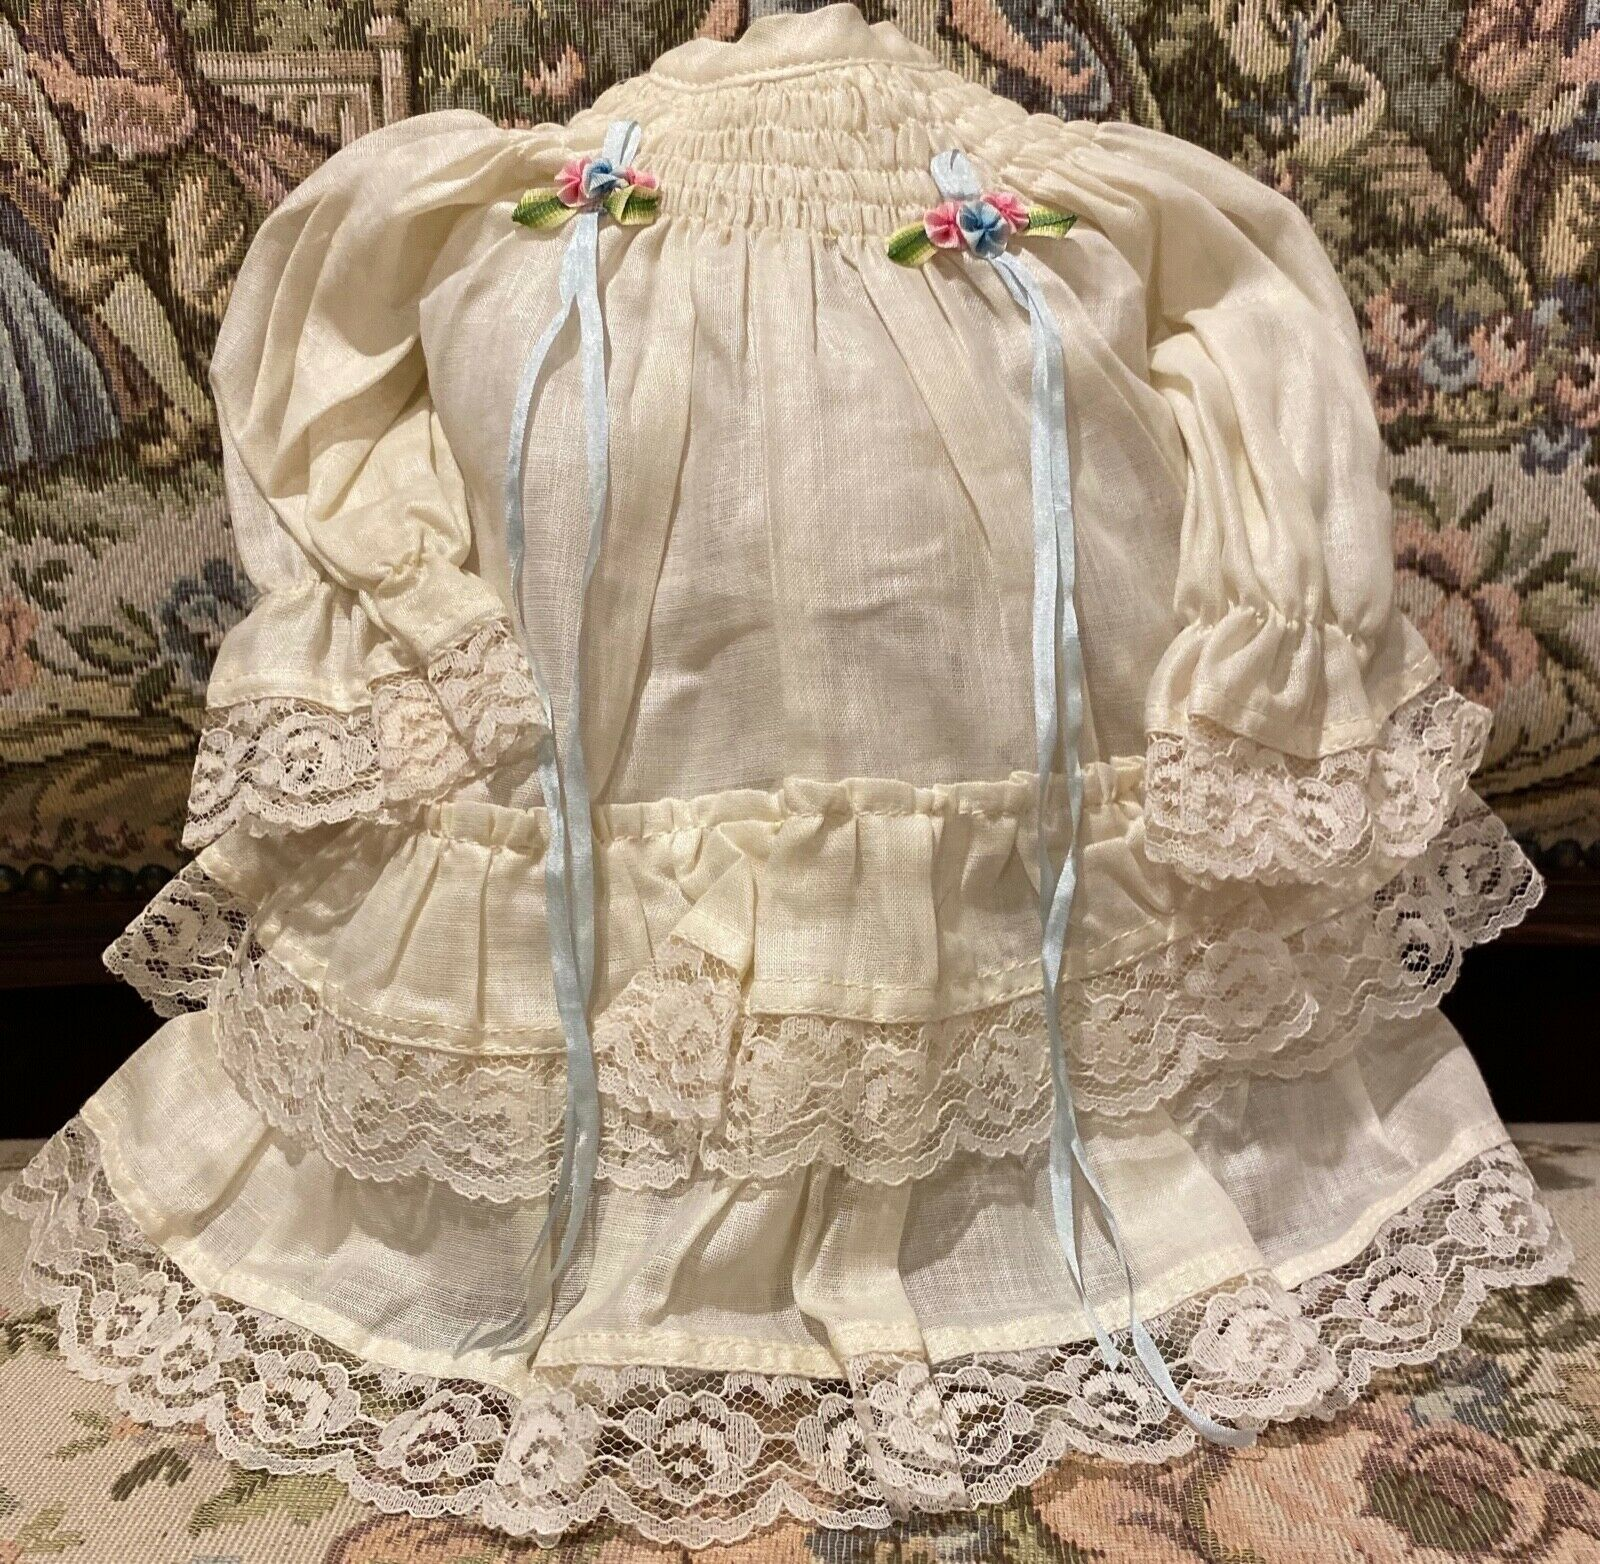 Gorgeous Frenchy Cotton Outfit For 16-17  French or German Bisque Doll